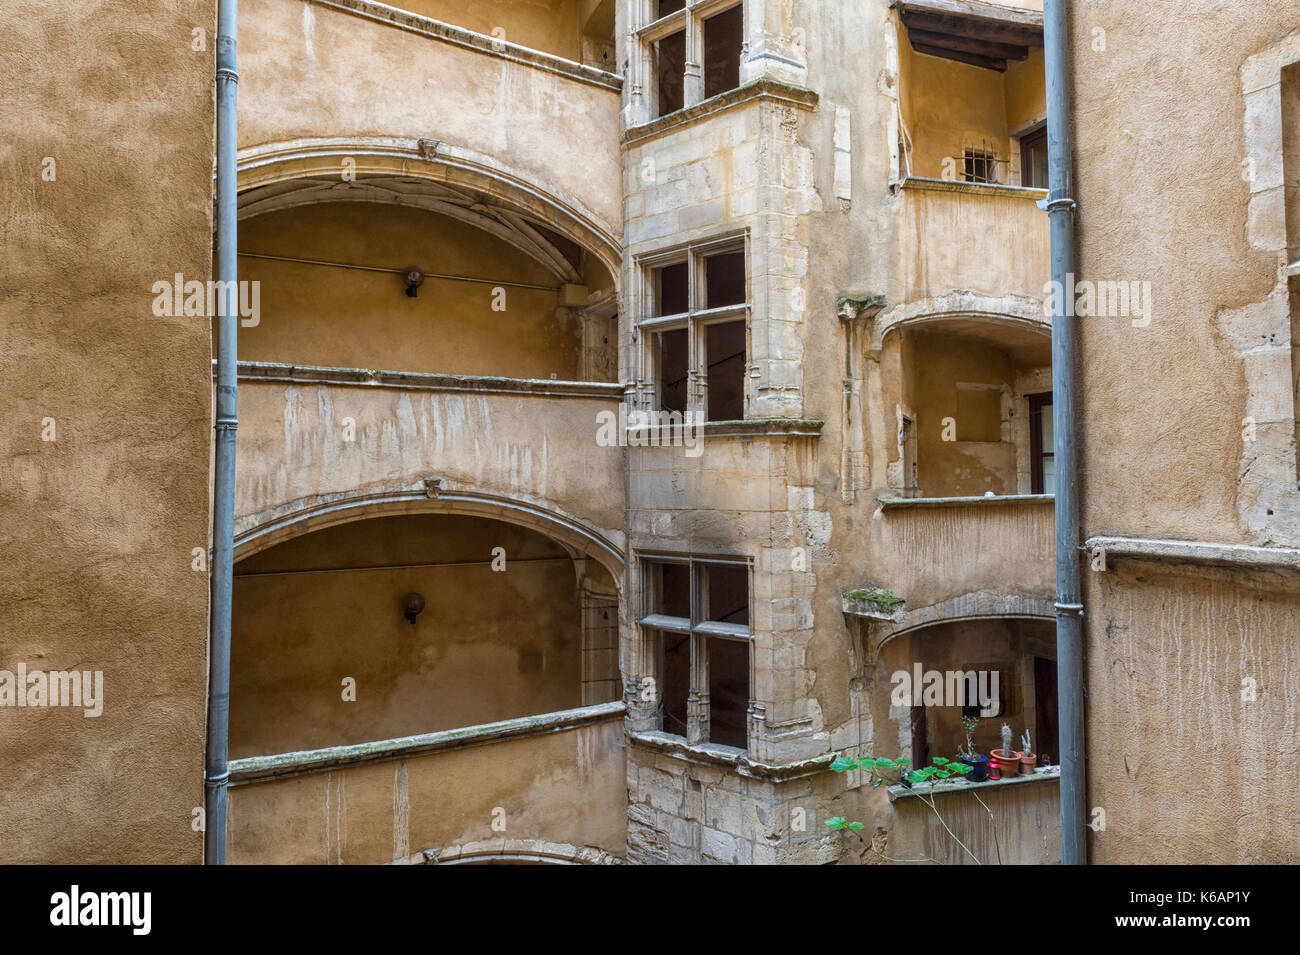 Traboule Les deux Cours, Saint Jean District, Unesco World Heritage Site, Old Lyon, Rhône Alpes, France Stock Photo